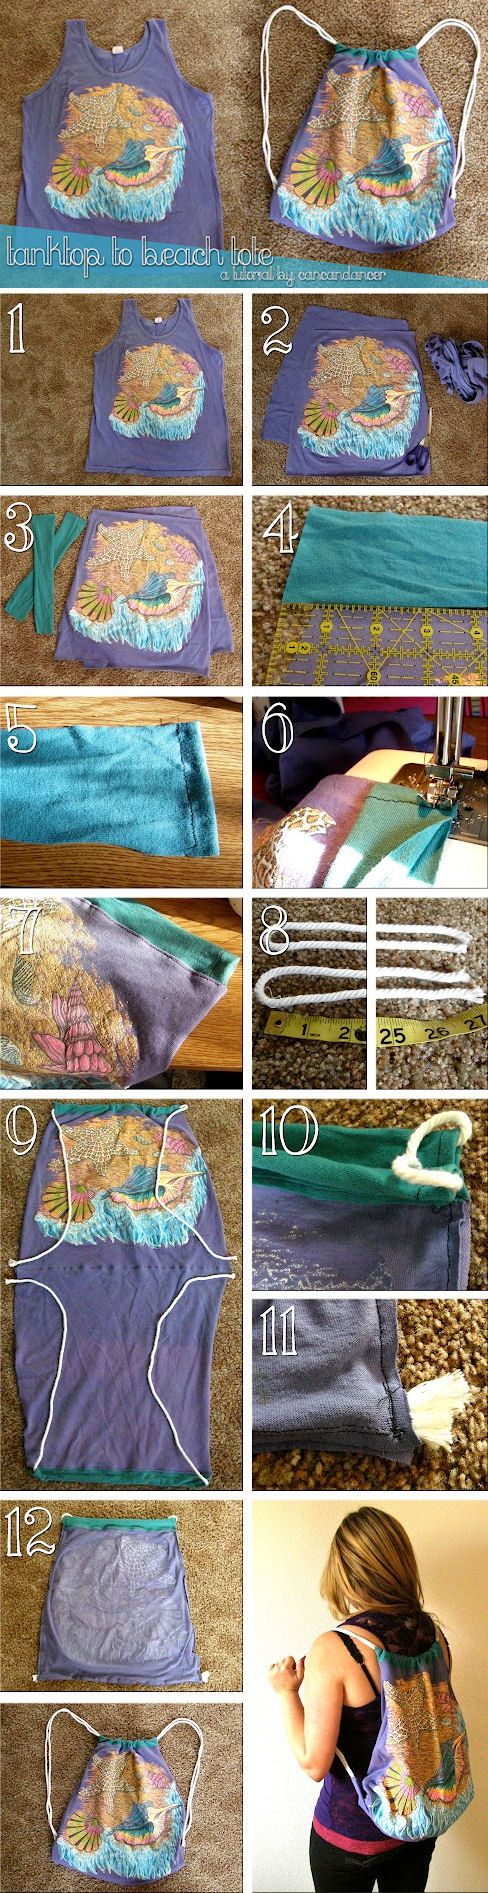 How to make a drawstring backpack out of a t-shirt